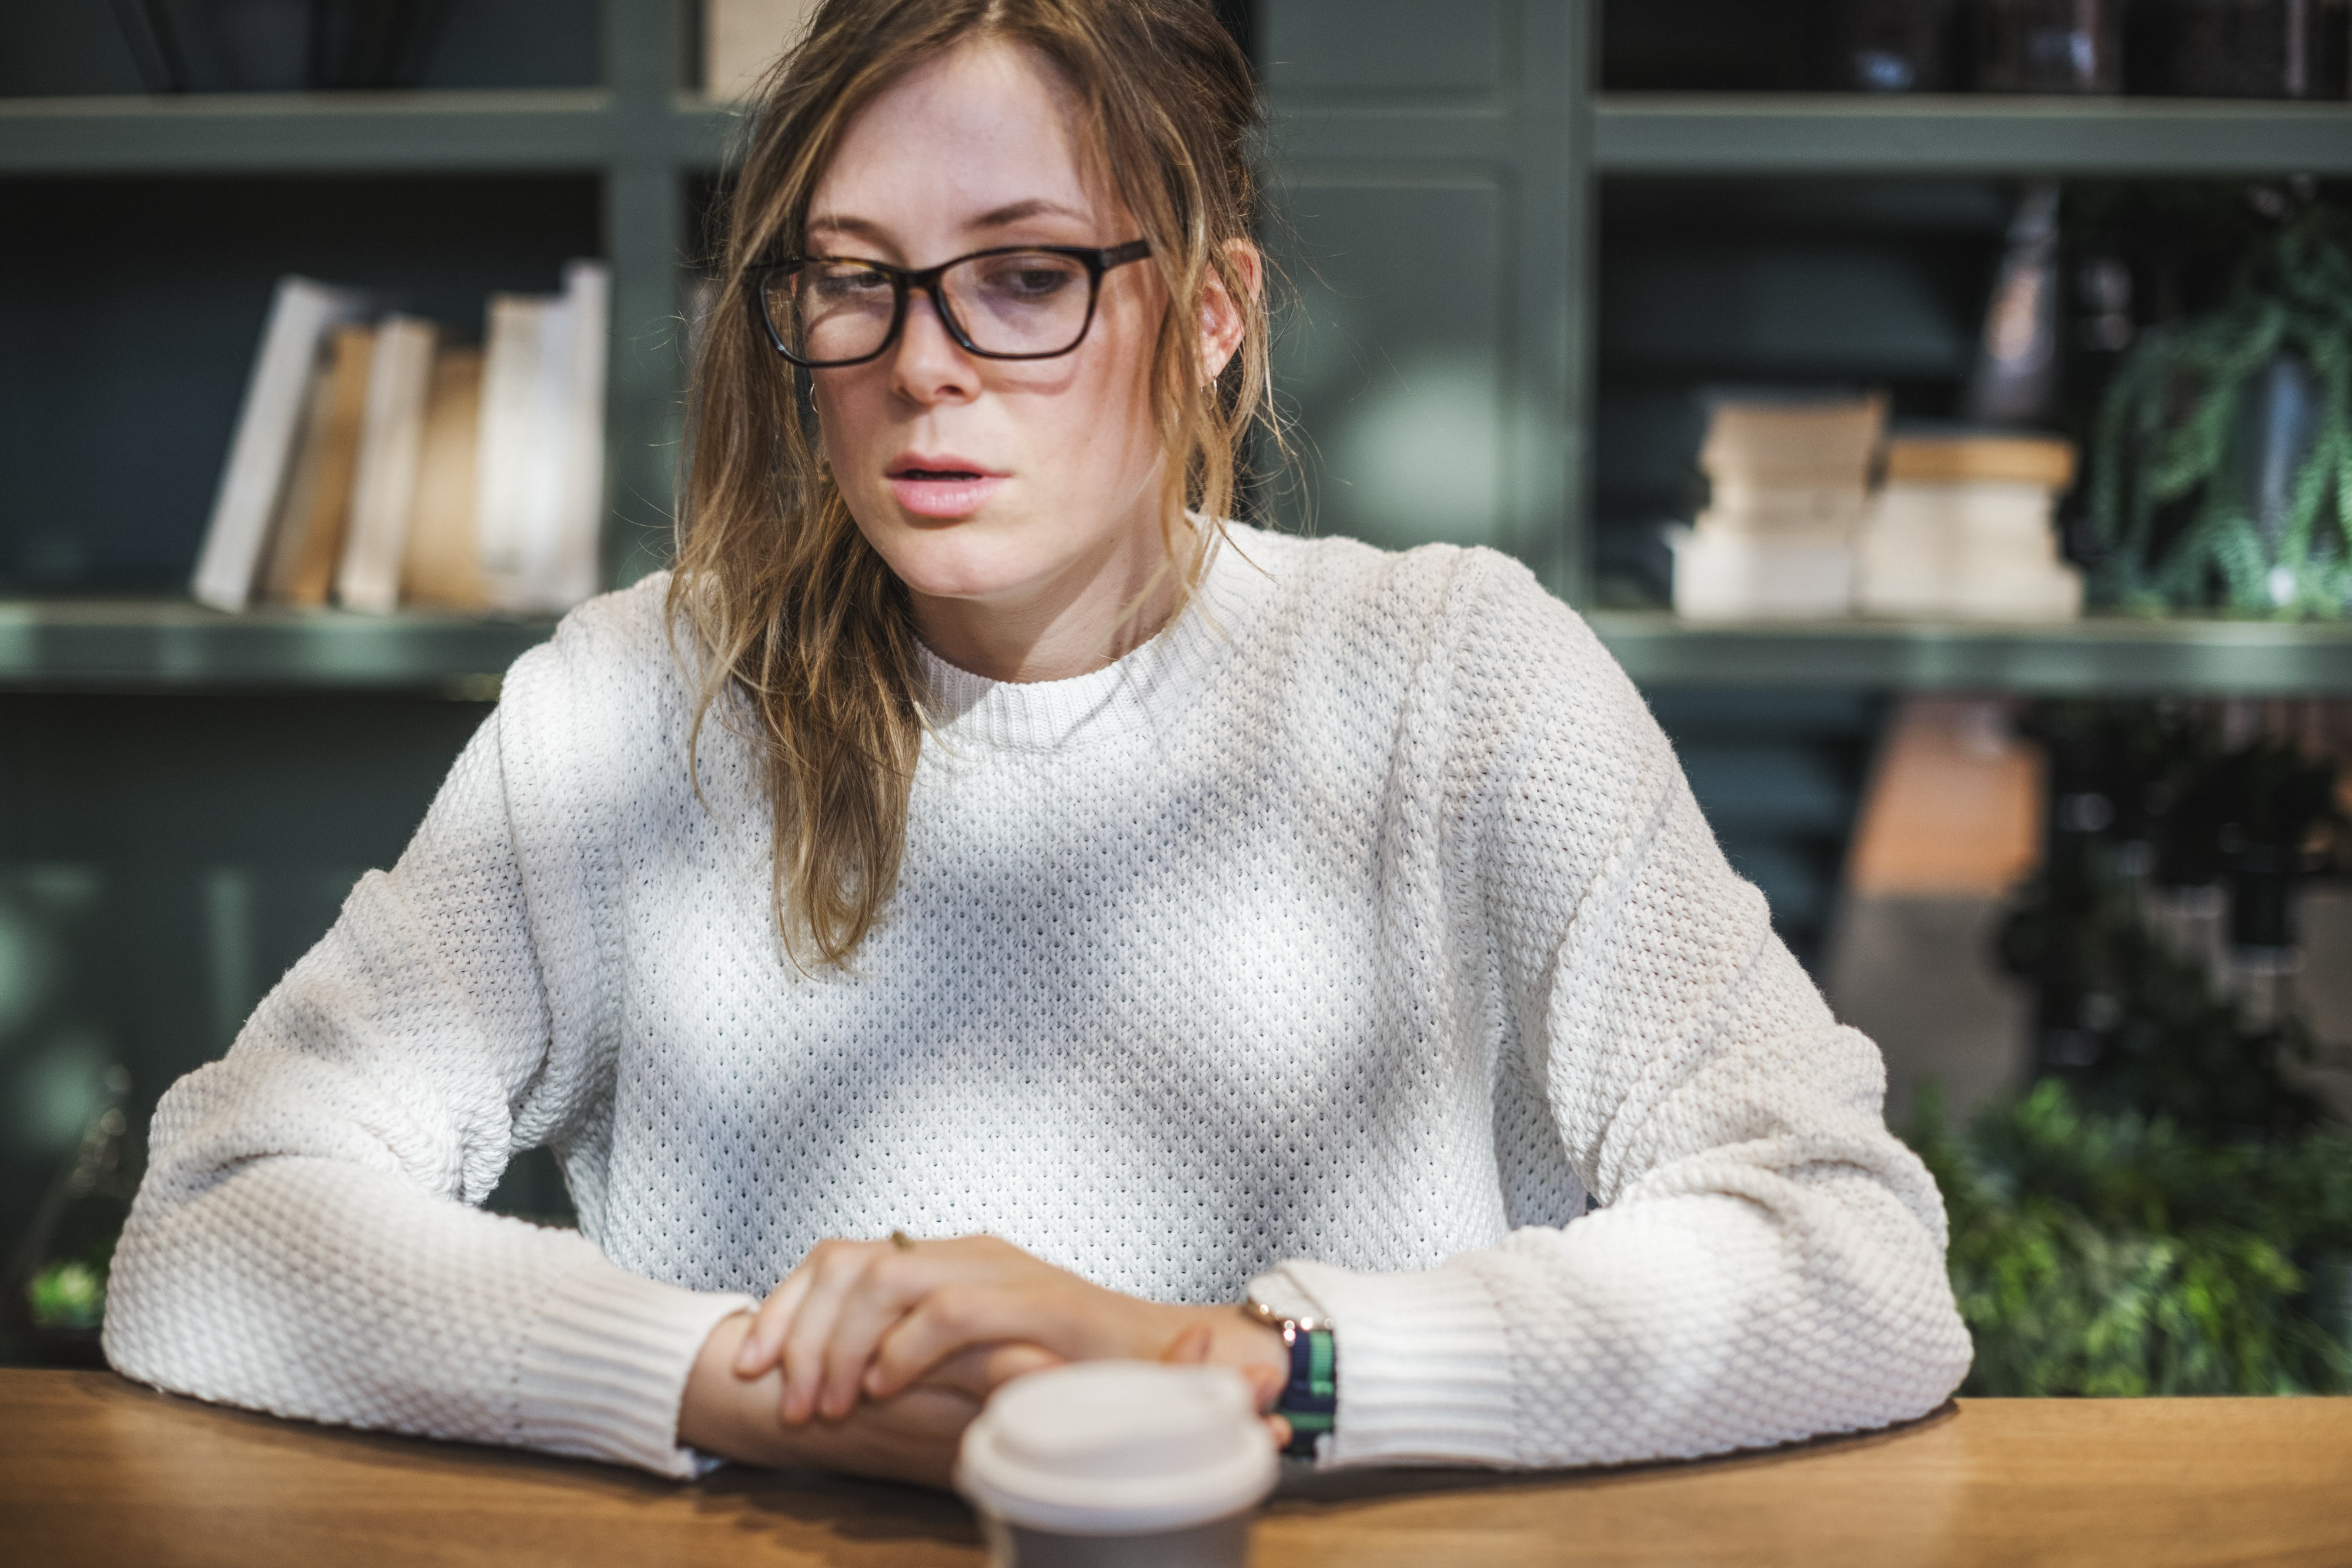 woman wearing white knit sweater sitting at table